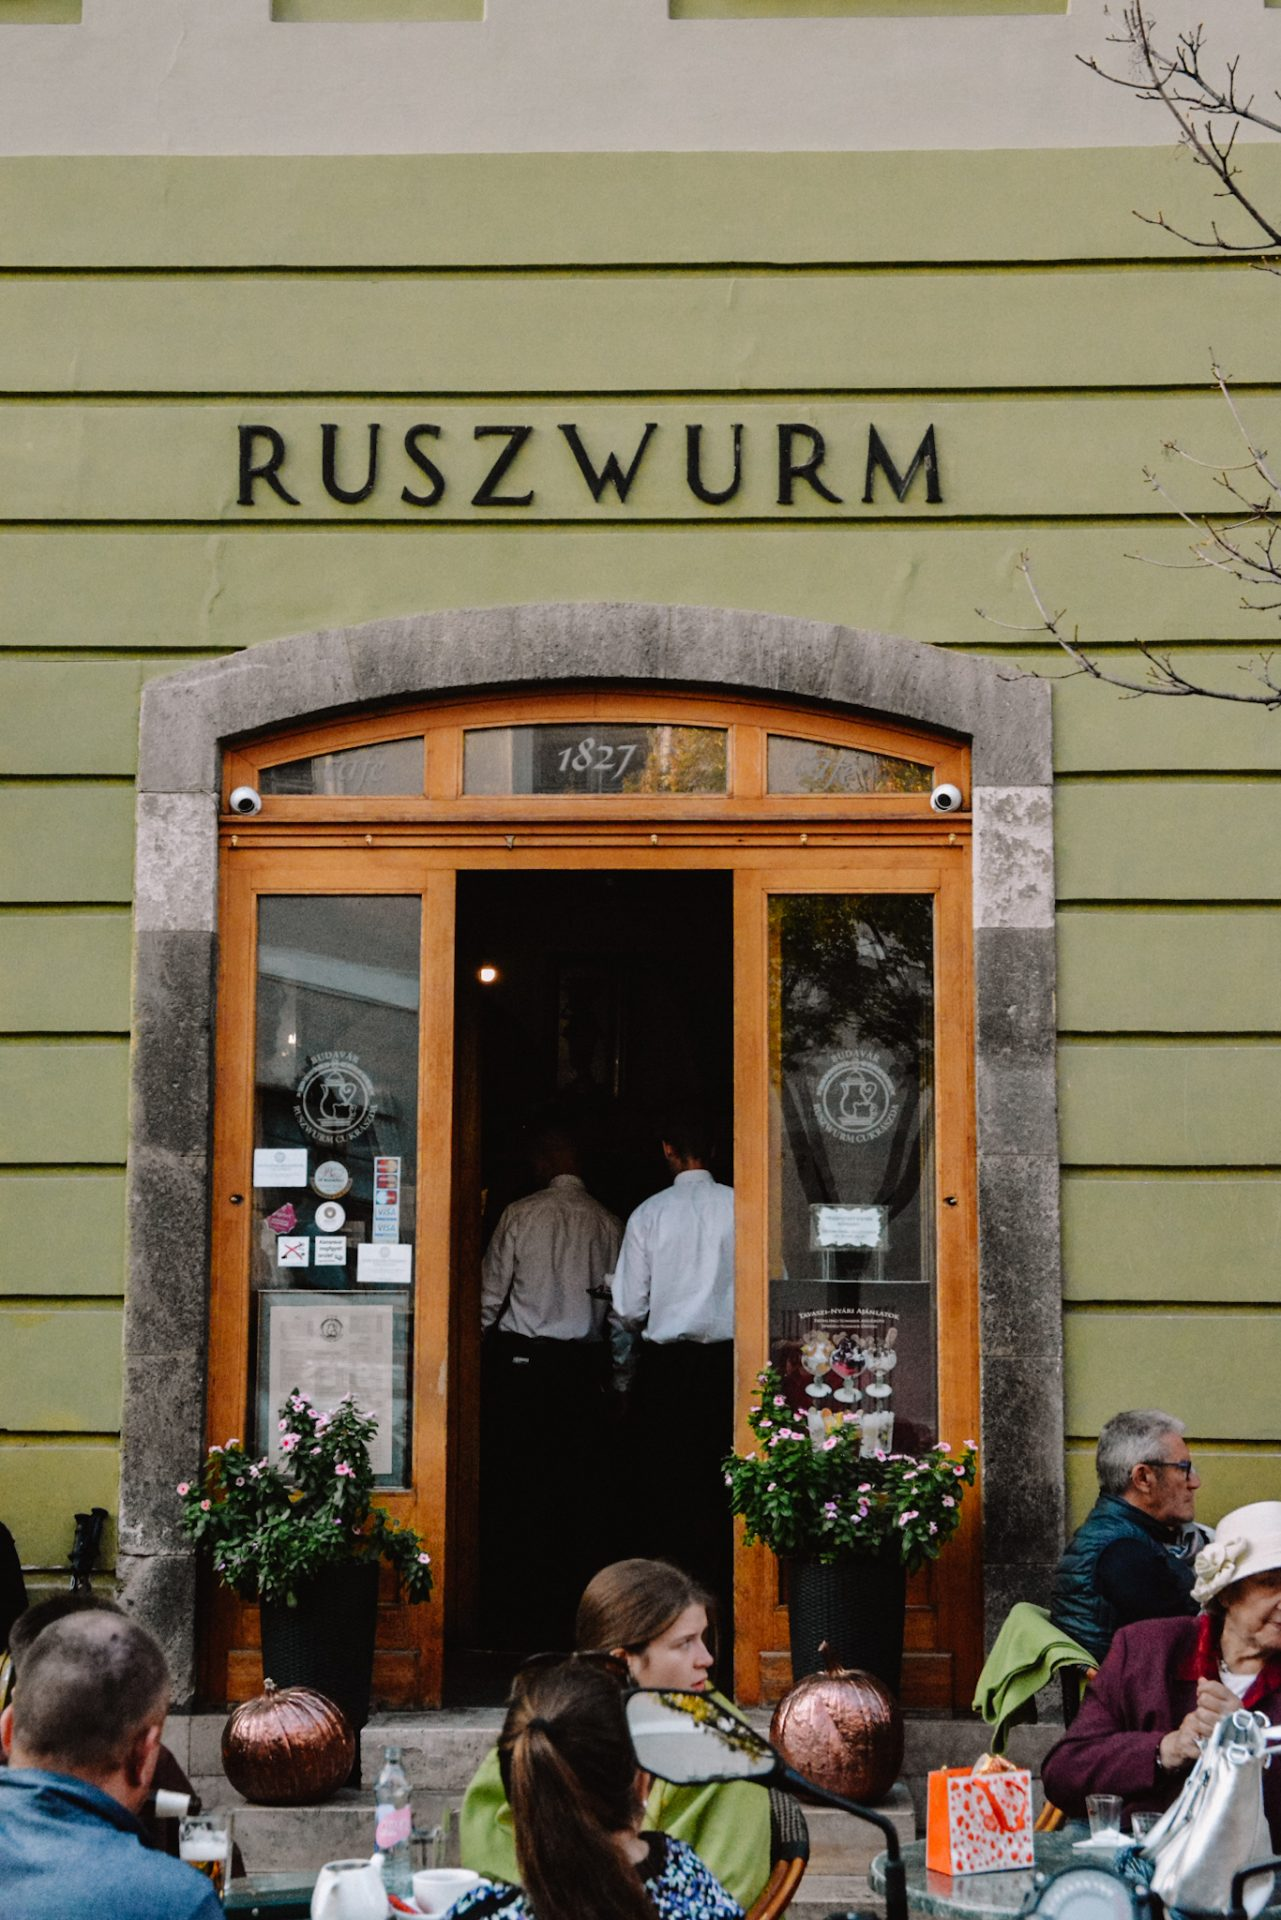 Eating at Ruszwurm cafe in Budapest is a must